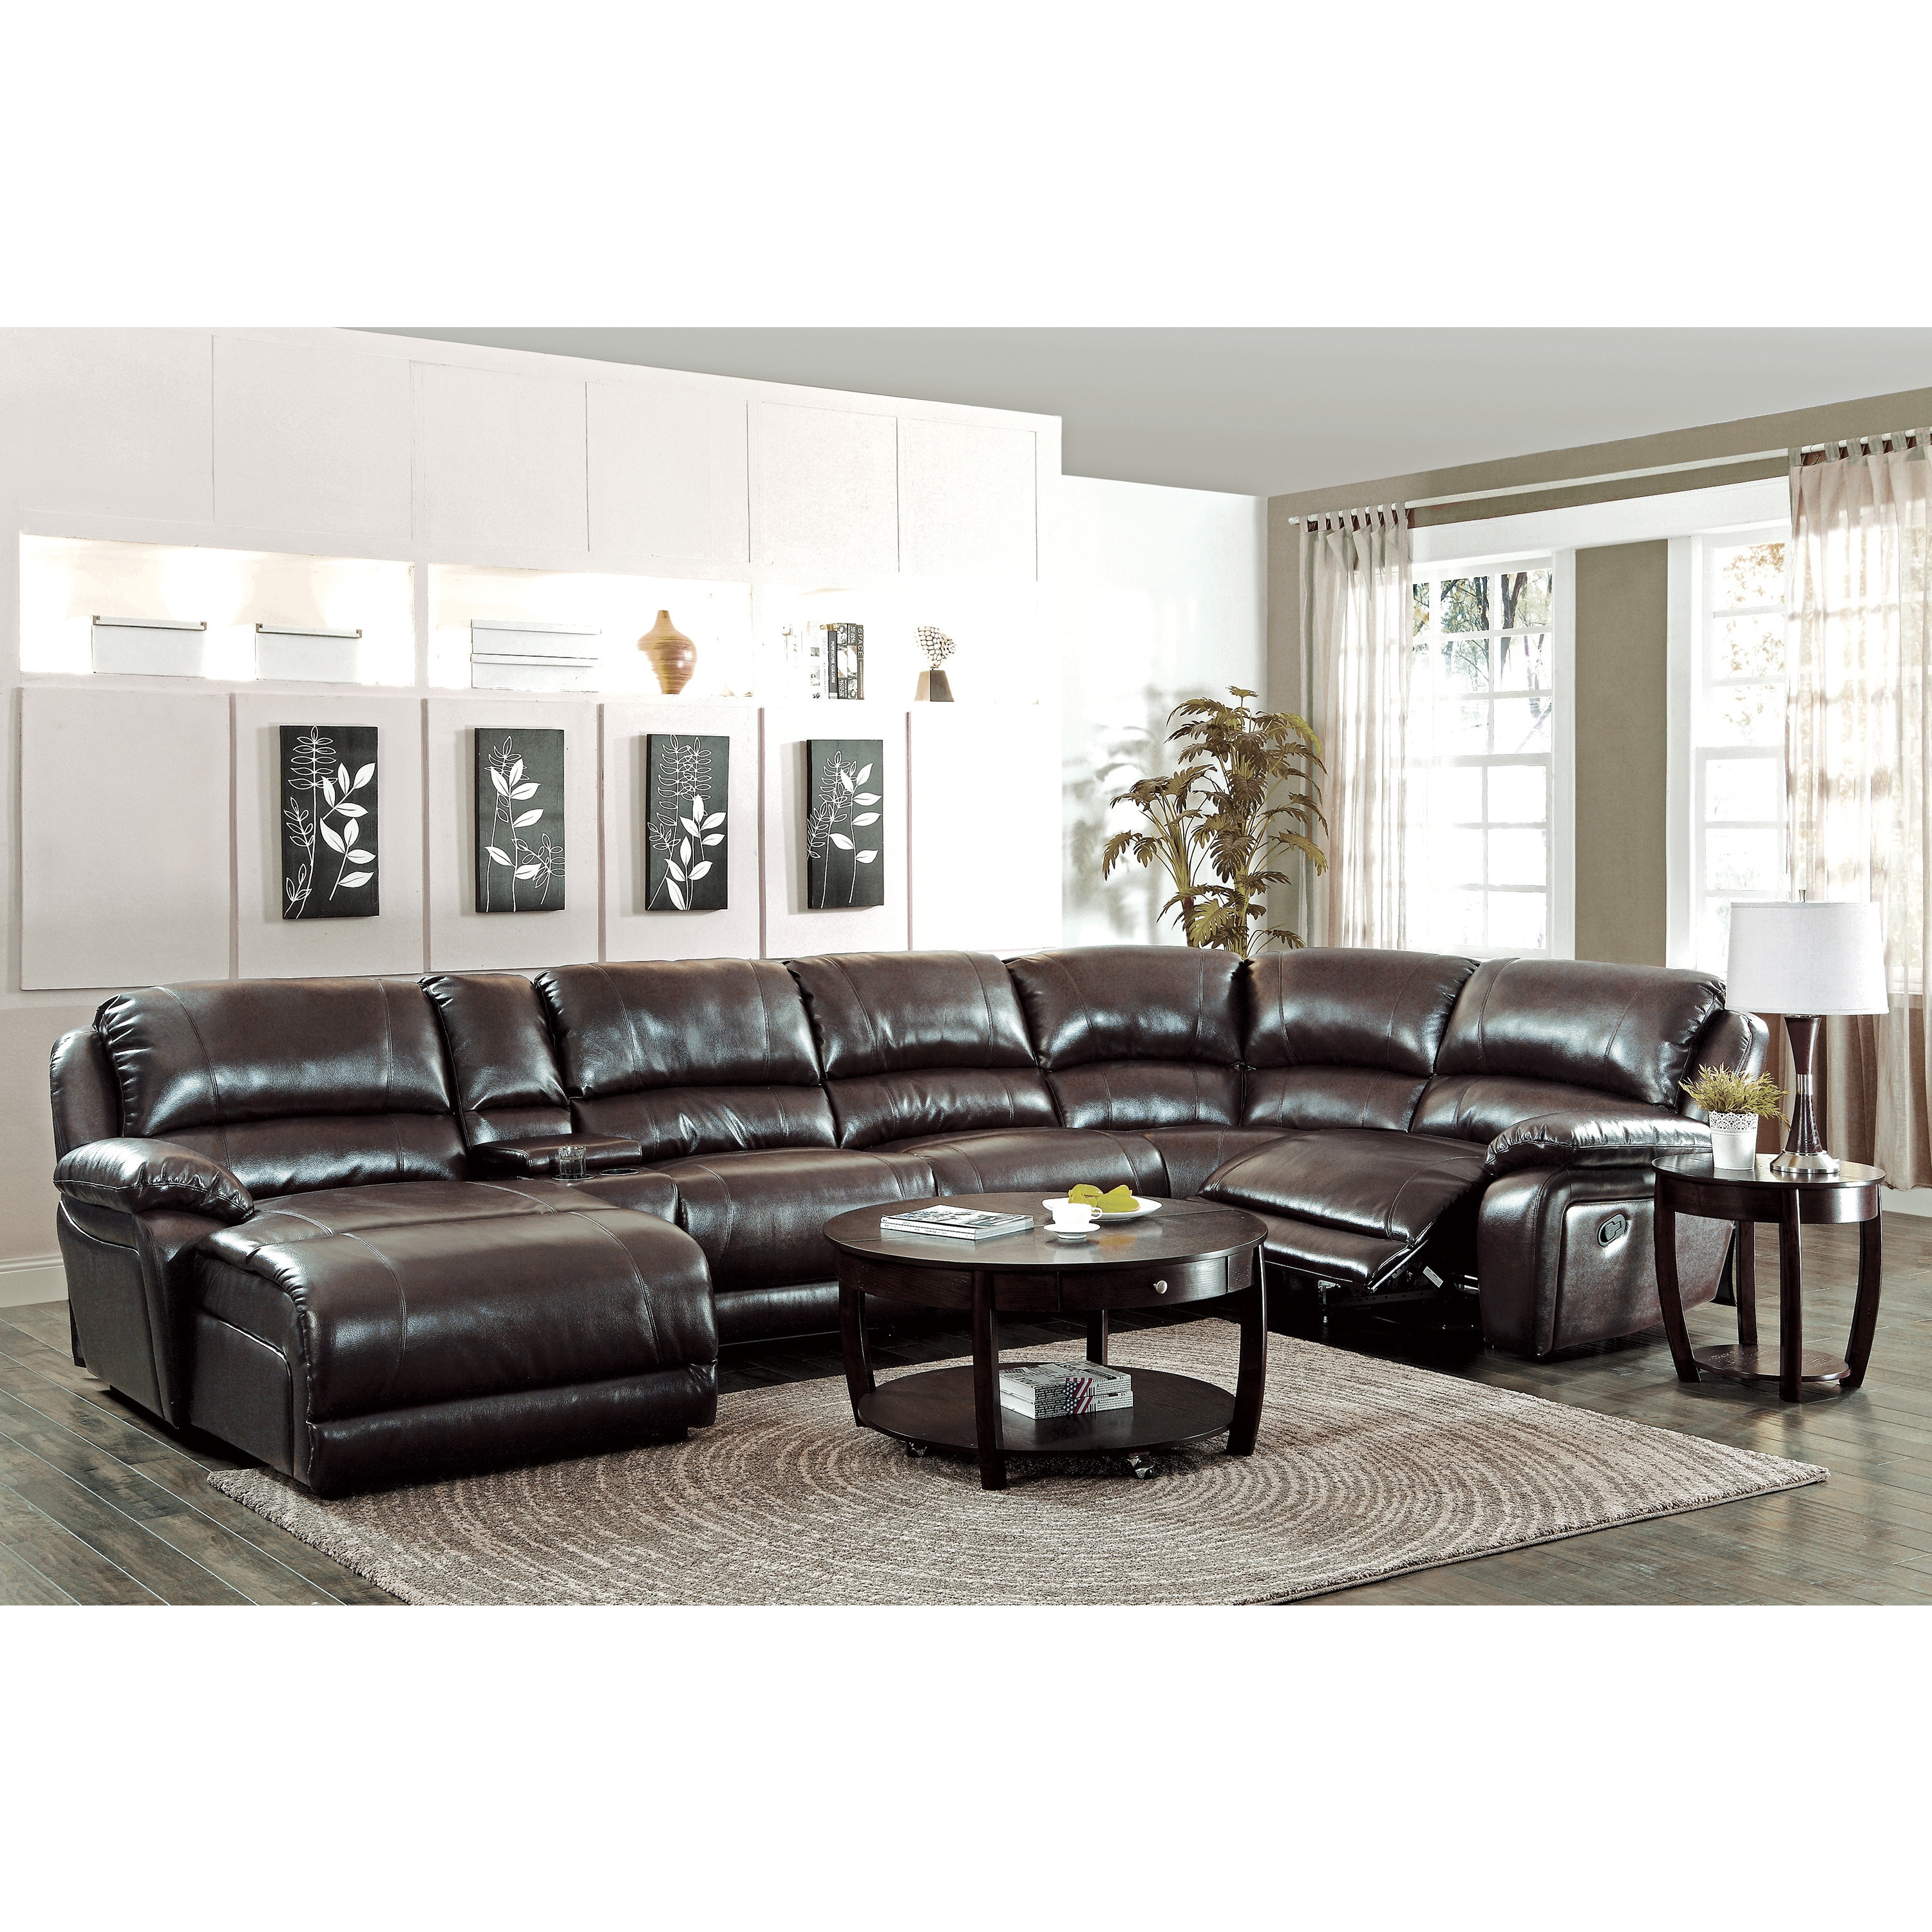 recliner nantahala products ashley number with by design sectional signature item reclining faux leather chaise